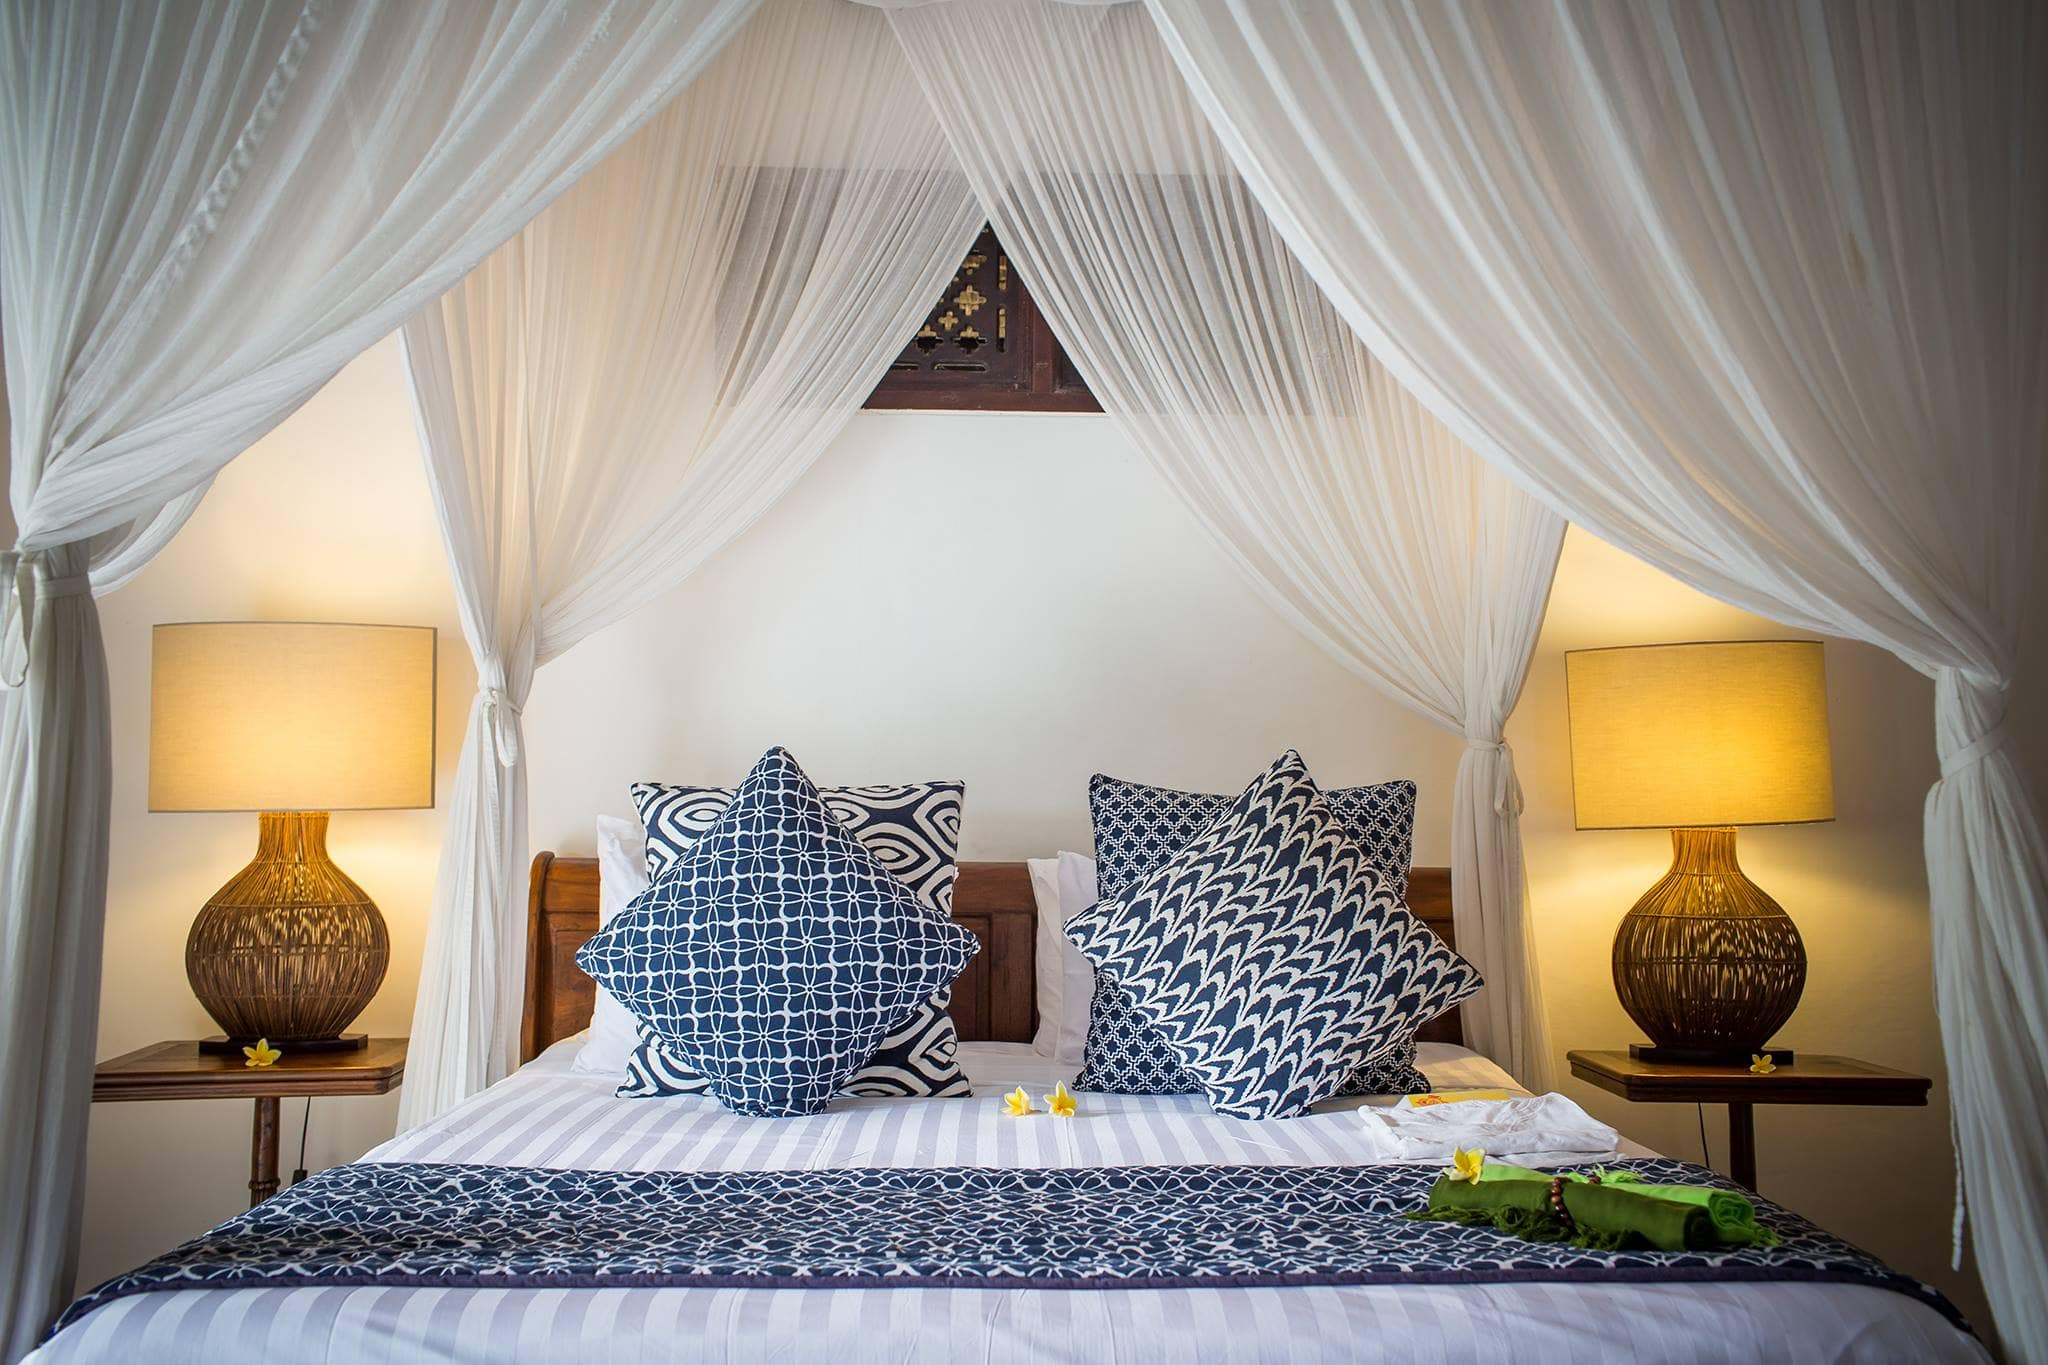 best wellness retreats in bali top wellness resorts bali luxury wellness bali